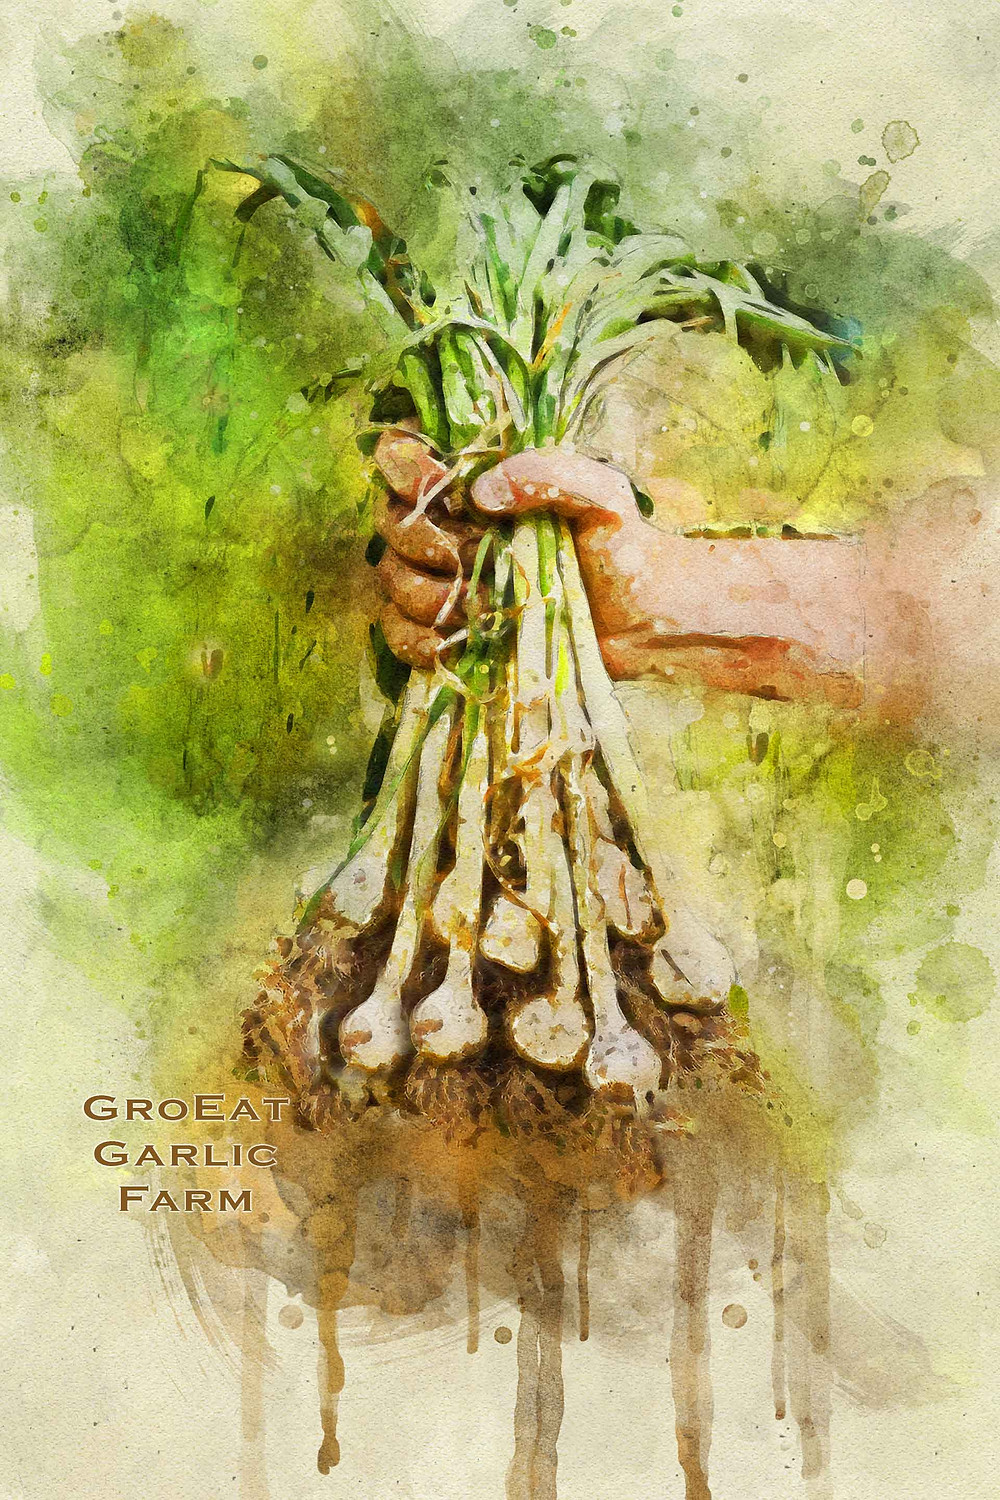 planting nsw,garlic planting nc,garlic for nail grow,garlic planting location,garlic garden lebanese breeze,garlic for garden pests,garlic for garden pest control,garlic planting perth,garlic planting philippines,garlic planting pot,garlic farming for profit,garlic plant pictures,garlic plant part,garlic plant pdf,garlic plant phoenix,garlic cloves for planting in the fall,garlic planting instructions,garlic planting in spring,garlic planting in fall,garlic planting in kenya,garlic planting in the philippines,garlic planting in south africa,garlic planting in pots,garlic planting in containers,garlic kale planting,garlic farming kenya,how to keep garlic for planting,garlic planting rotation,garlic planting requirements,garlic planting rate,garlic planting roller,garlic planting rhs,garlic plant roots,garlic garden restaurant,garlic farming requirements,garlic harvest rain,garlic cloves ready for planting,garlic for garden use,garlic bulbs for planting uk,buy garlic for planting uk,organic garlic for planting uk,garlic plant use,garlic companion planting uk,garlic harvest uk,garlic farming uk,garlic farming uganda,garlic bulbs for planting ontario,garlic planting ontario,garlic planting ohio,garlic planting out,garlic plant ornamental,garlic plant organic,garlic onion planting,garlic of planting,garlic harvest ontario,garlic farming ontario,garlic for spring planting,garlic planting for sale,garlic bulbs for planting scotland,garlic planting season,garlic planting spacing,garlic planting season south africa,garlic planting season nz,garlic planting stock,garlic planting south africa,garlic planting season in the philippines,garlic planting machine,garlic planting melbourne,garlic planting machine in india,garlic planting machine australia,garlic planting machinery,garlic planting maine,garlic planting month,garlic planting methods,garlic planting minnesota,buy garlic for planting,buy organic garlic for planting,best place to buy garlic for planting,best garlic for planting,black garlic for planting,bulk garlic for planting,buy garlic for planting australia,best way to store garlic for planting,breaking apart garlic for planting,music garlic for planting,where to buy garlic for planting near me,where to buy garlic bulbs for planting near me,bone meal for planting garlic,grow grid planting mats for onions & garlic,how to make garlic sprout for planting,garlic planting machine for sale,moon phase for planting garlic,garlic planting youtube,garlic garden yorkton,garlic farming youtube,garlic harvest youtube,garlic garden yorkton sk,garlic farming yield in india,youtube how to harvest garlic,planting garlic for next year,how to save garlic for planting next year,can you eat garlic for planting,where to get garlic bulbs for planting,preparing ground for garlic planting,gourmet garlic bulbs for planting,planting guide for garlic,planting guide for growing garlic,how to get garlic ready for planting,gardening tips for planting garlic,companion planting guide for garlic,non gmo garlic for planting,garlic bulbs for planting for sale,garlic cloves for planting for sale,where to buy garlic bulbs for fall planting,organic garlic bulbs for fall planting,where to buy garlic for fall planting,garlic sets for fall planting,fertilizer for planting garlic,elephant garlic bulbs for planting,elephant garlic cloves for planting,elephant garlic bulbs for planting uk,planting depth for elephant garlic,equipment for planting garlic,planting instructions for elephant garlic,where to buy elephant garlic for planting,crackin garlic for planting,creole garlic for planting,can you buy garlic for planting,garlic cloves for planting,companion planting for garlic,where can i buy garlic bulbs for planting,preparing garlic cloves for planting,isle of wight garlic for planting,italian garlic for planting,instructions for planting garlic,what is the best soil for planting garlic,garlic bulbs for planting ireland,how to store garlic for planting in the fall,italian garlic bulbs for planting,planting season for garlic in south africa,what is the planting season for garlic,garlic plant for zone 5,garlic planting zone 7,garlic planting zone 6,garlic planting zones,garlic planting zone 9,garlic farming zimbabwe,garlic for winter planting,garlic planting watering,garlic planting when,how to plant garlic wikihow,garlic plant when to pick,garlic plant wild,garlic plant with flowers,garlic bulbs for winter planting,garlic companion planting with tomatoes,garlic harvest when,planting depth for garlic,planting distance for garlic,how do you prepare soil for planting garlic,how do i prepare garlic cloves for planting,spacing and depth for planting garlic,directions for planting garlic,how to dry garlic for planting,how do you prepare garlic for planting,how do you break apart garlic for planting,garlic bulbs for planting australia,amazon garlic bulbs for planting,wood ash for planting garlic,how to prepare garlic for planting,how to store garlic for planting,hardneck garlic for planting,how to sprout garlic for planting,how to prep garlic for planting,how to save garlic for planting,how to choose garlic for planting,how to peel garlic